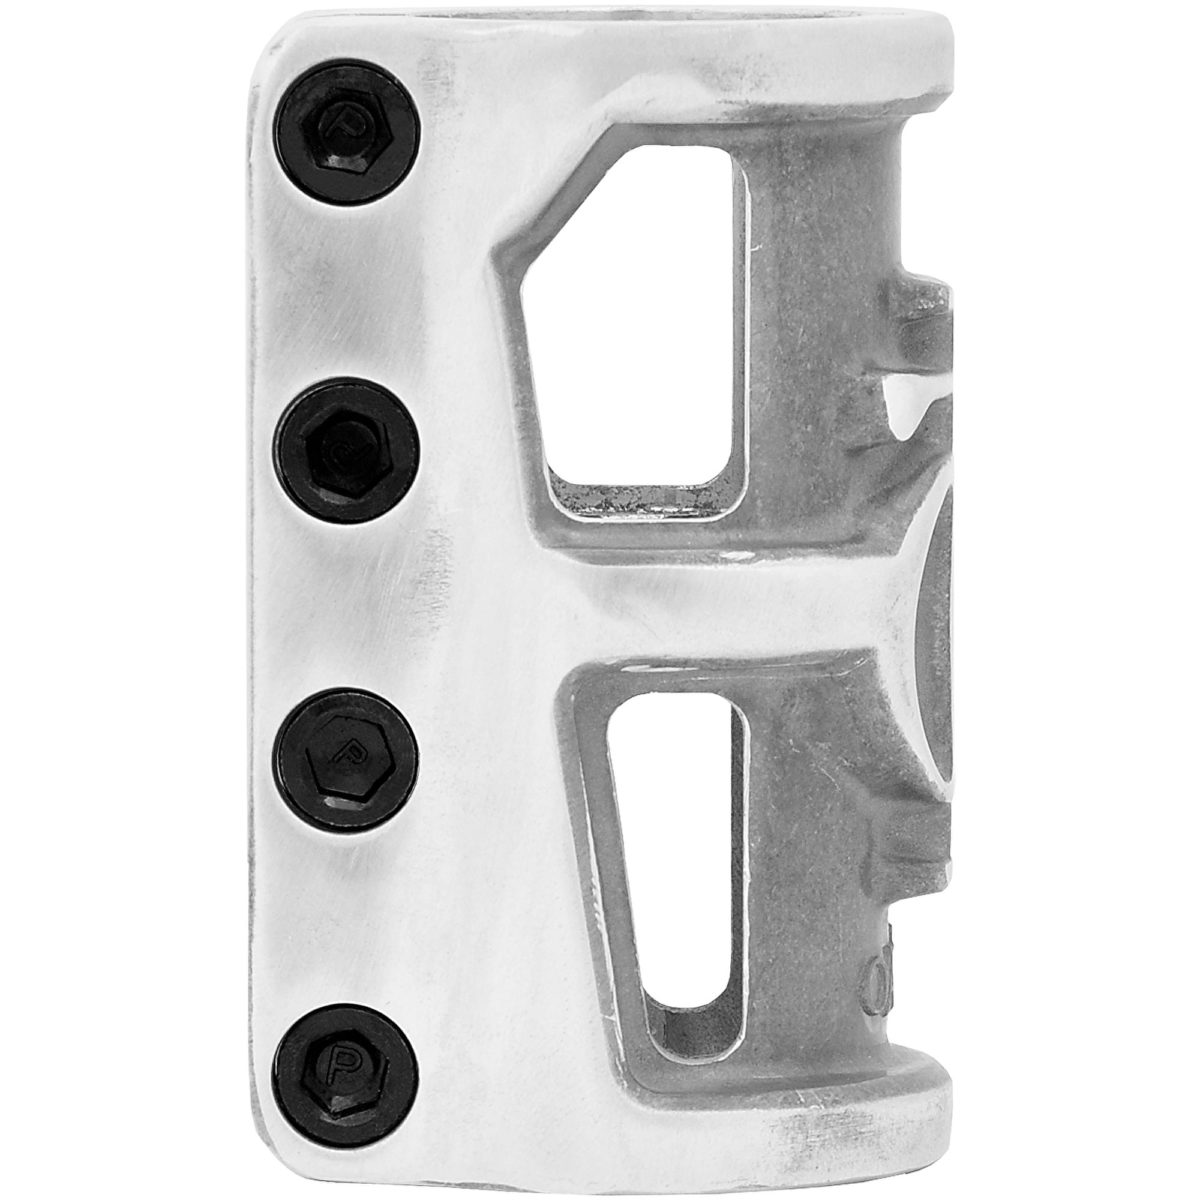 OATH CLAMP 4 BOLTS CAGE SCS RAW-2